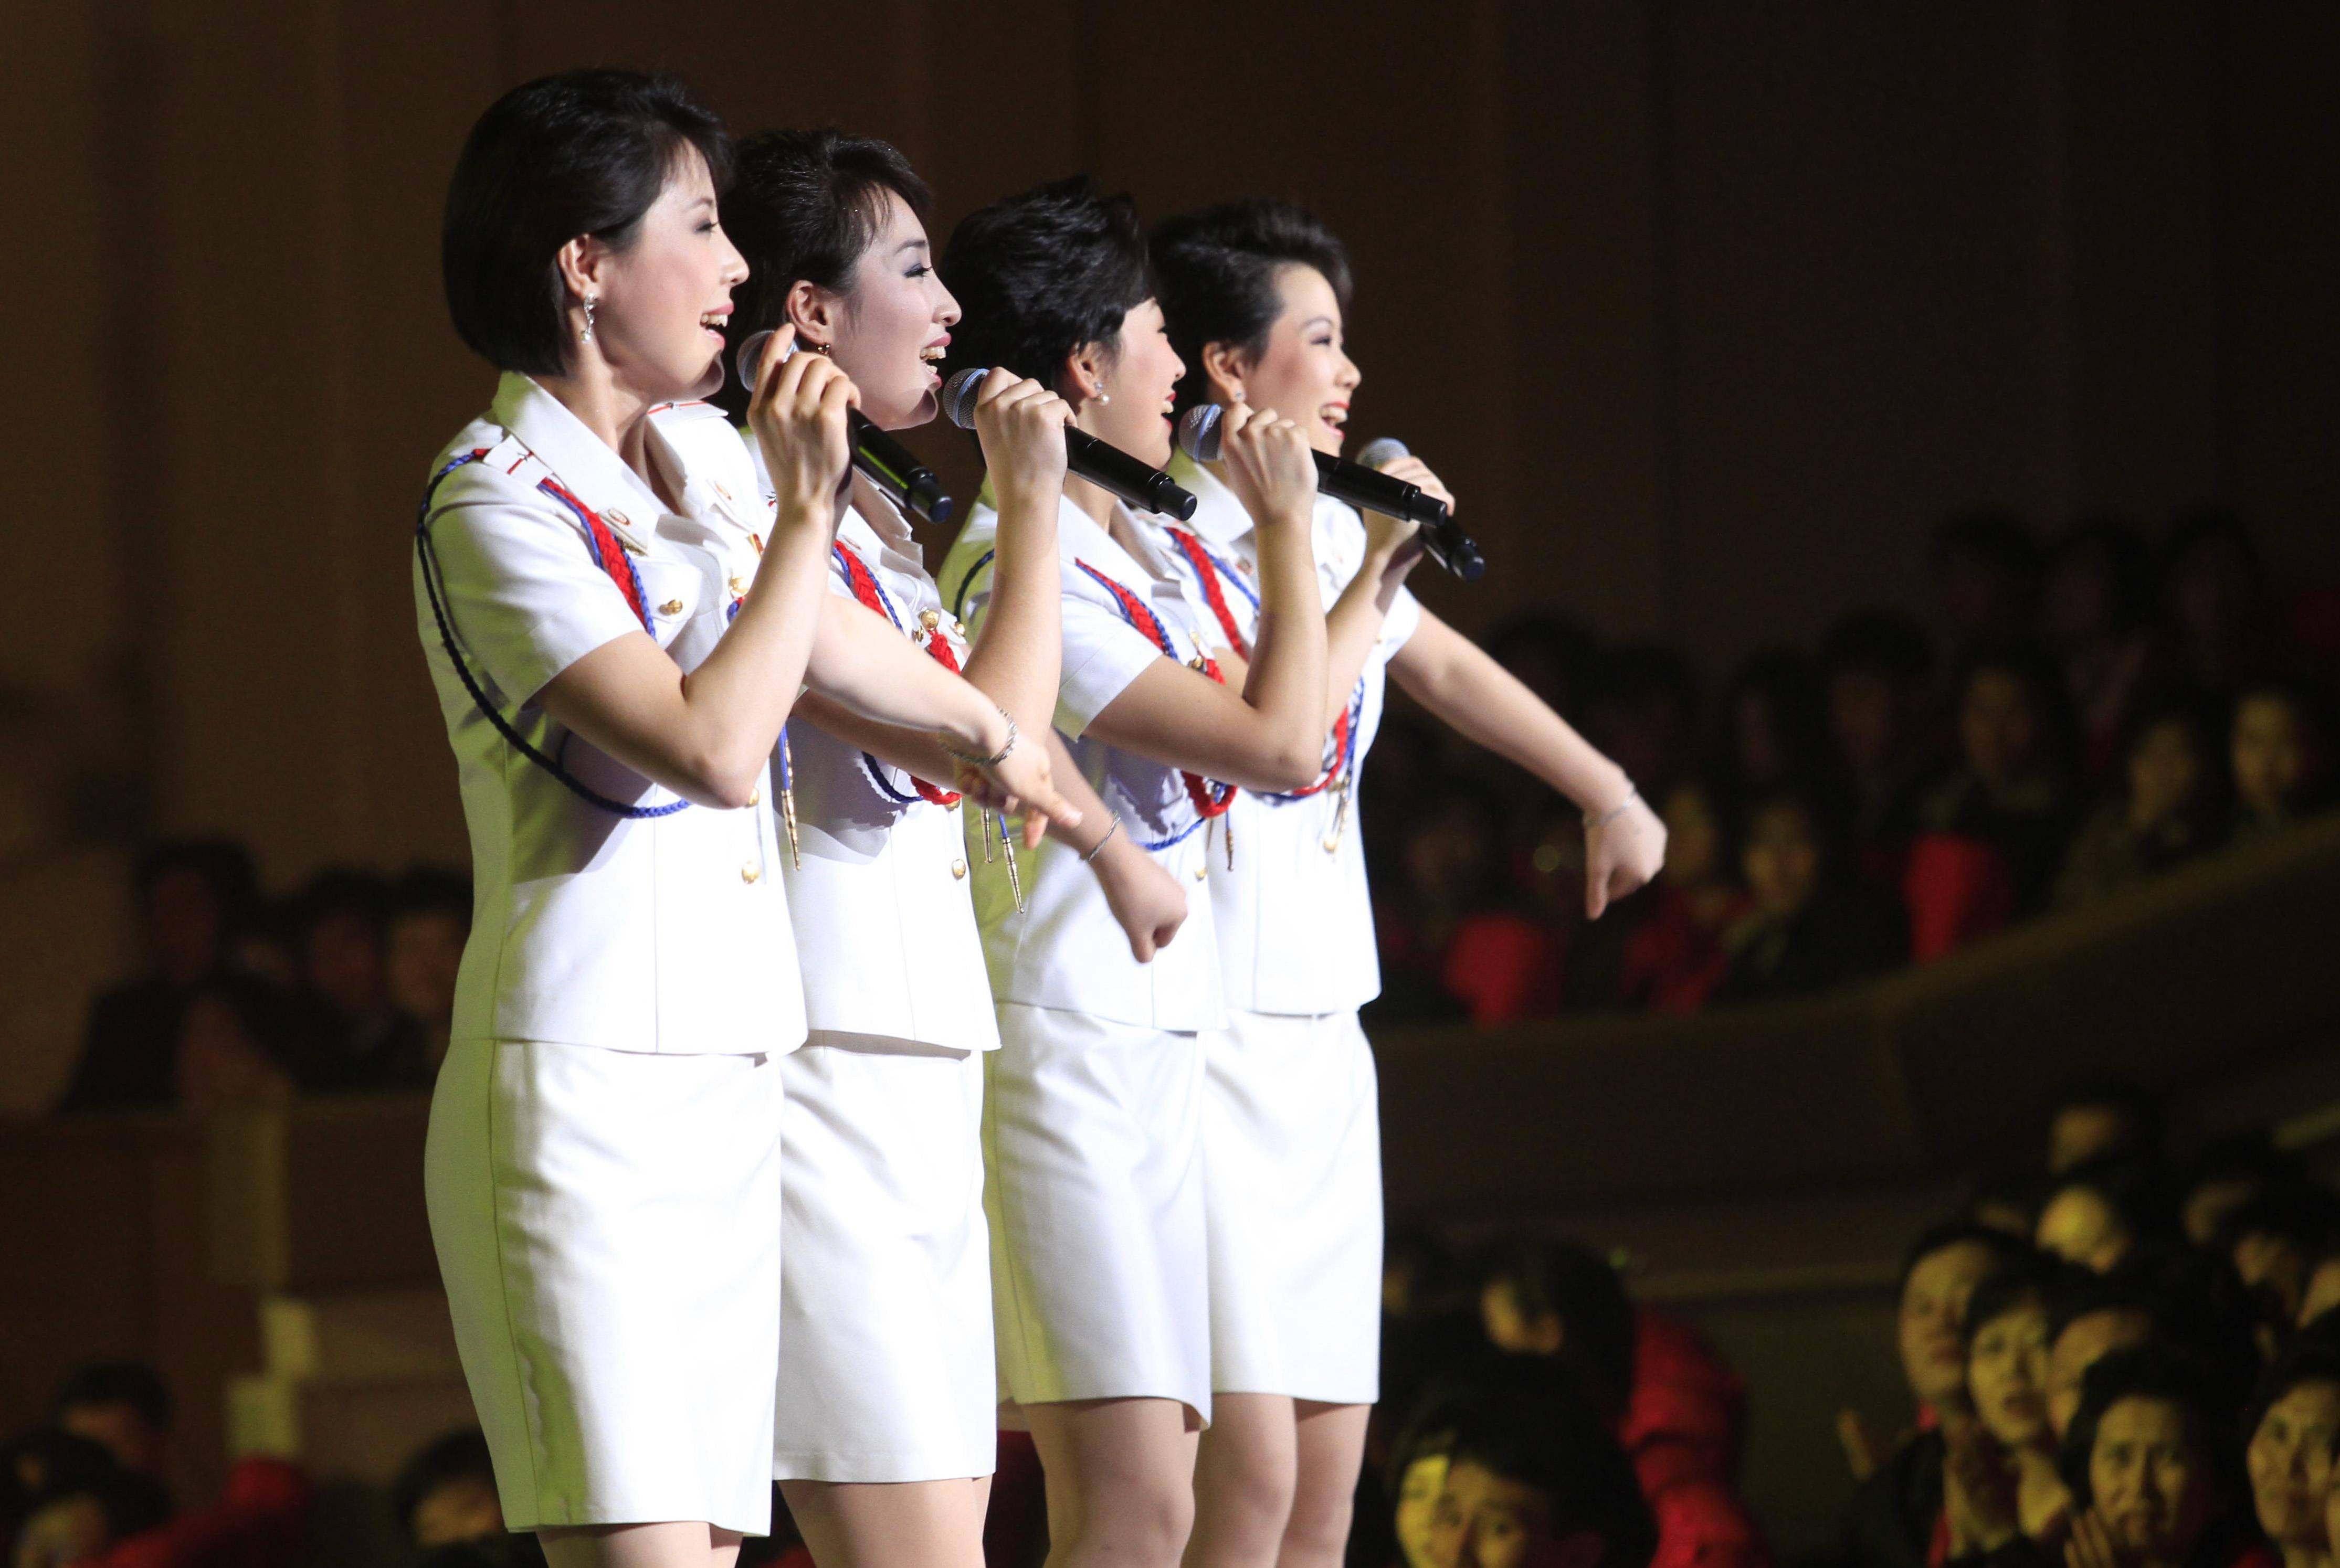 Singers of the Moranbong Band perform in Pyongyang, North Korea, March 28. Kim Jong Un's favorite guitar-slinging, miniskirt-sporting girl group, the Moranbong Band, is back.